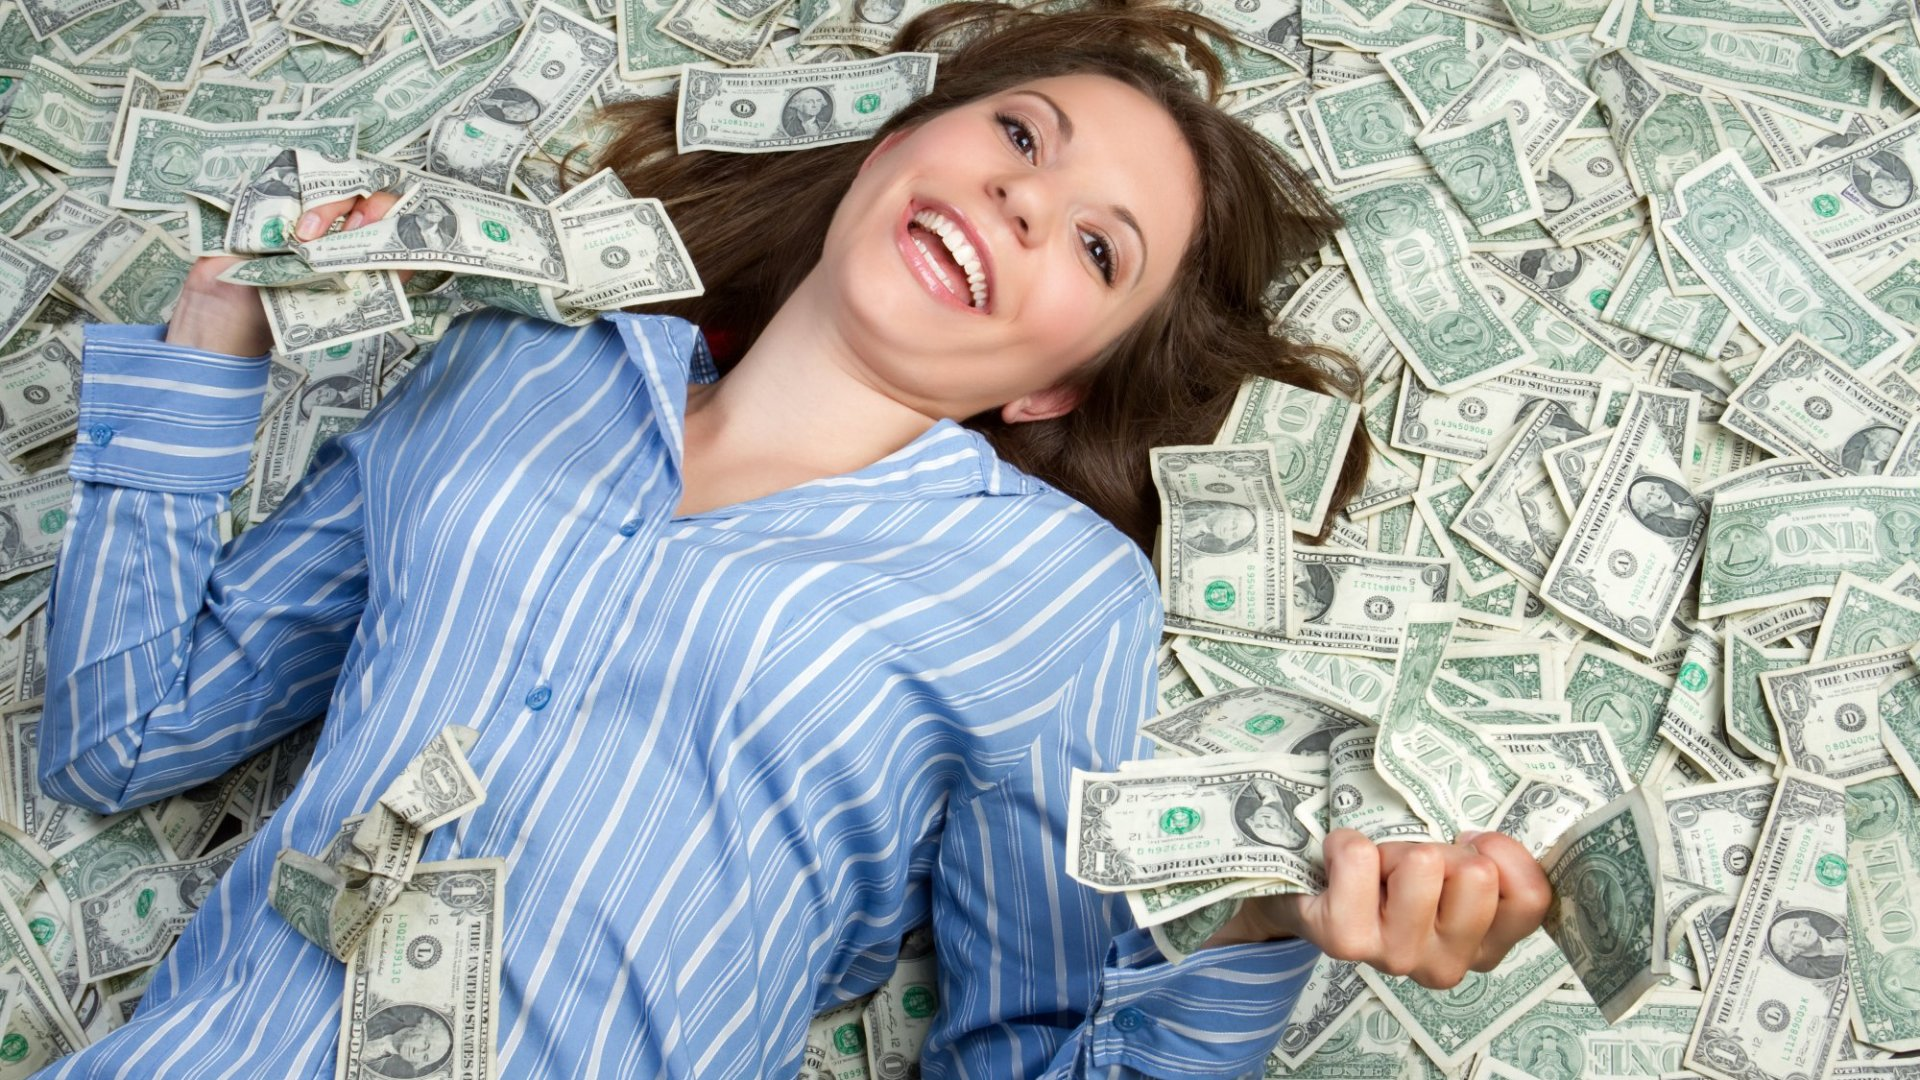 The ExactAmount of Money it Takes to Make a Person Happy Just Got an Update